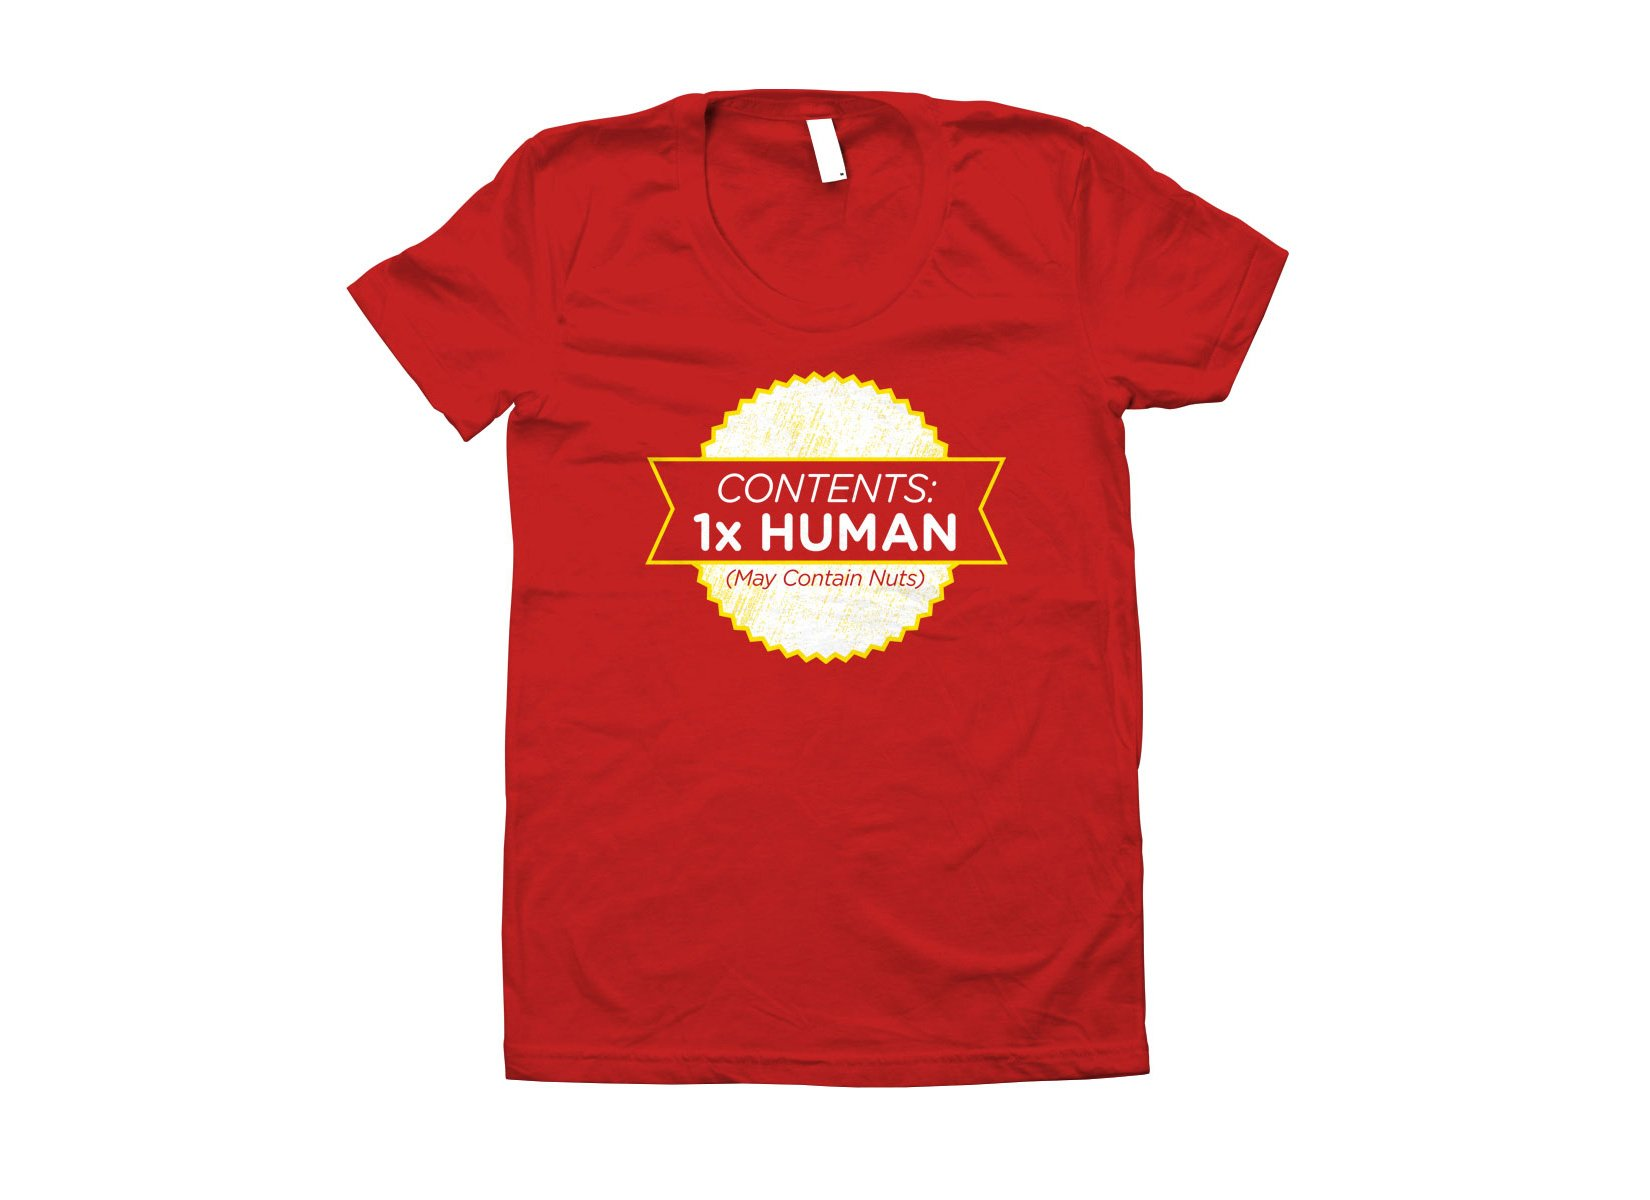 Contents: 1 Human, May Contain Nuts on Juniors T-Shirt